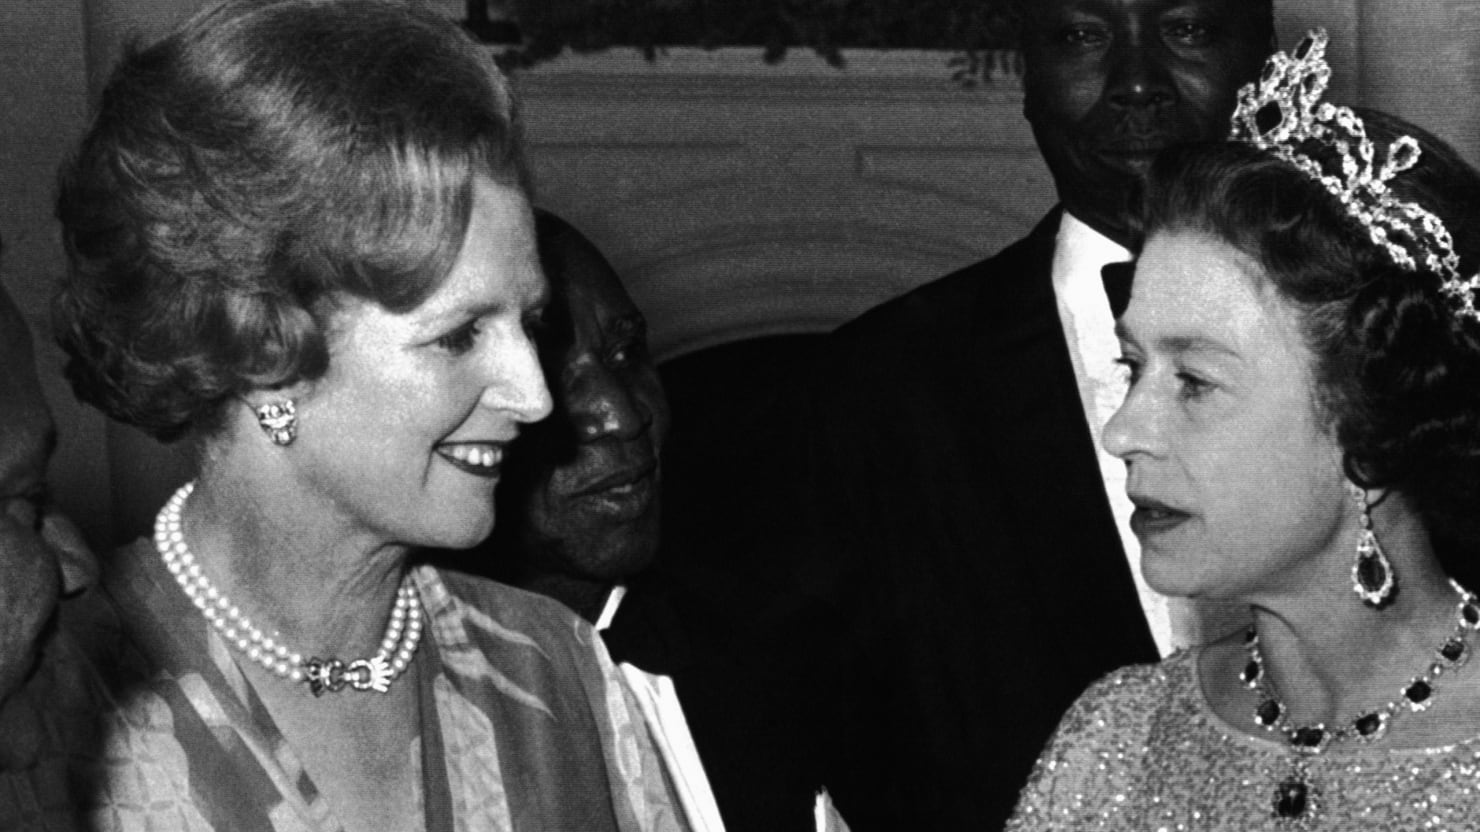 When 'Uncaring' and 'Confrontational' Thatcher Clashed With The Queen